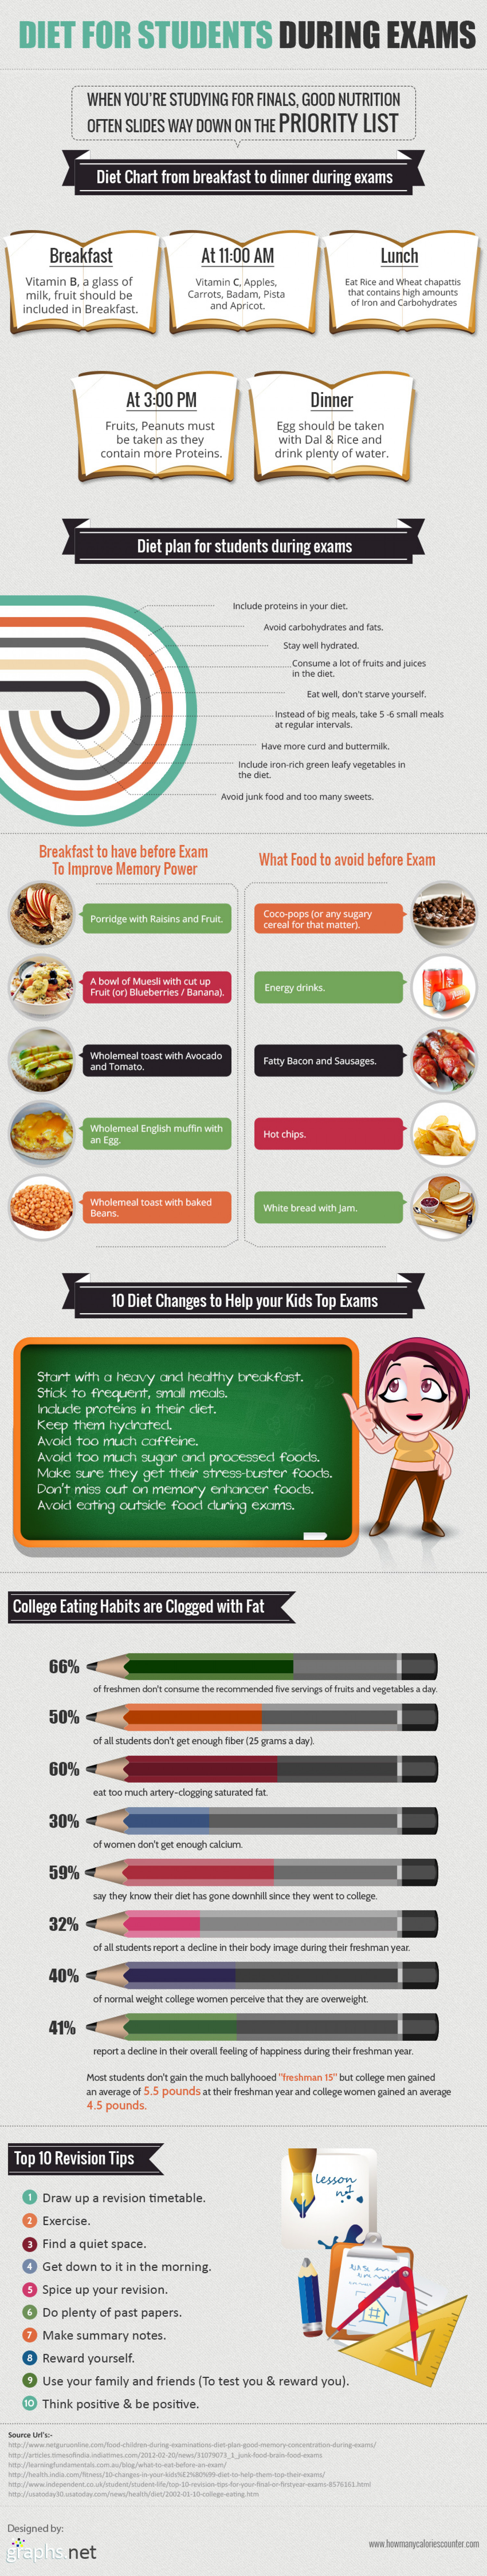 Diet for students Infographic